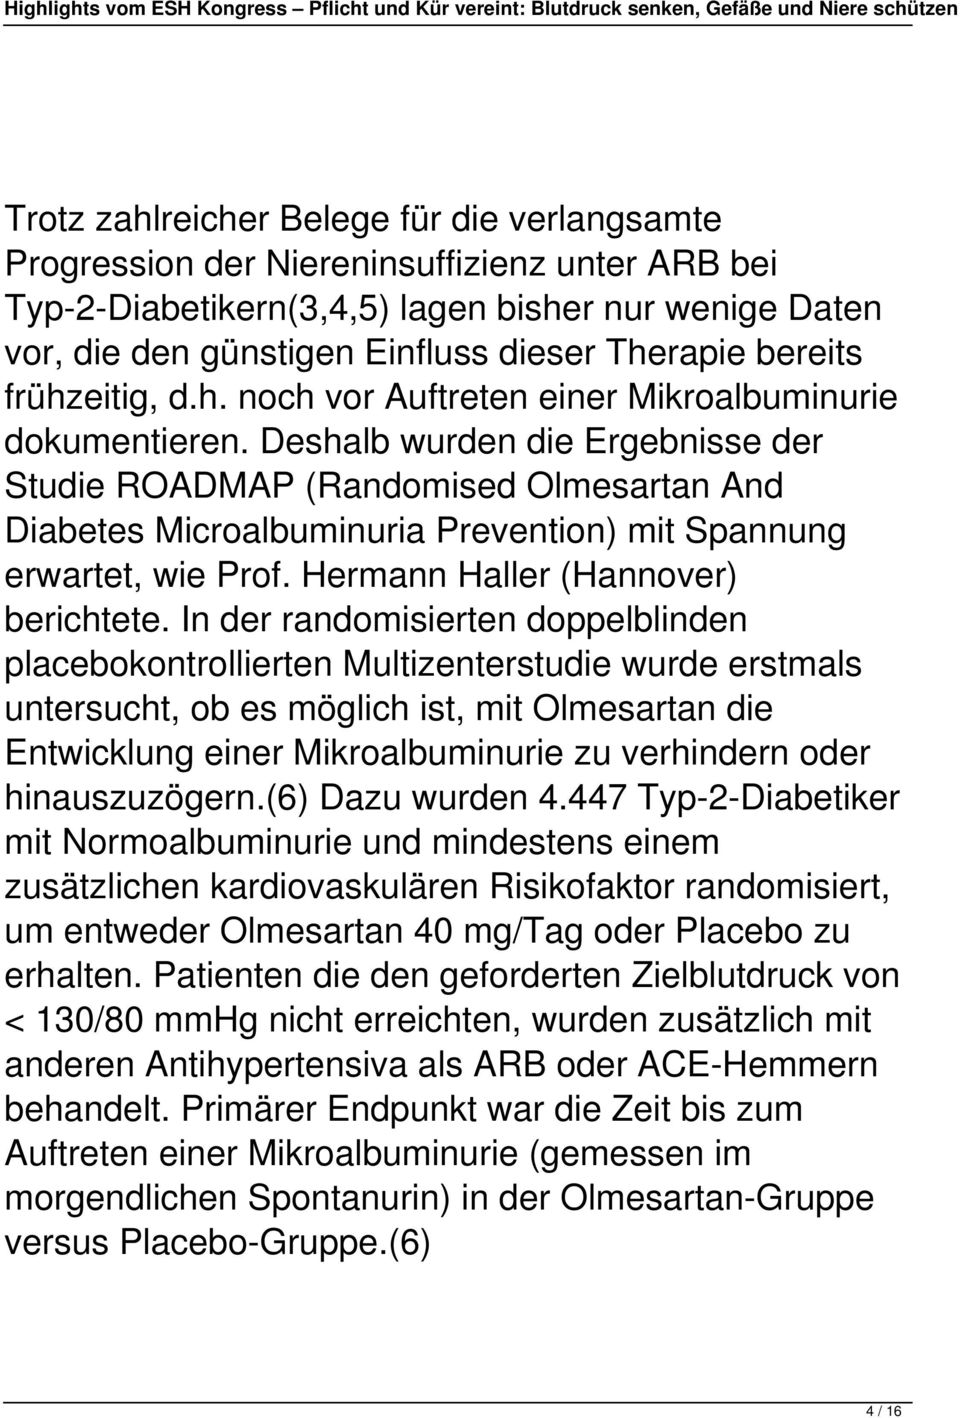 Deshalb wurden die Ergebnisse der Studie ROADMAP (Randomised Olmesartan And Diabetes Microalbuminuria Prevention) mit Spannung erwartet, wie Prof. Hermann Haller (Hannover) berichtete.